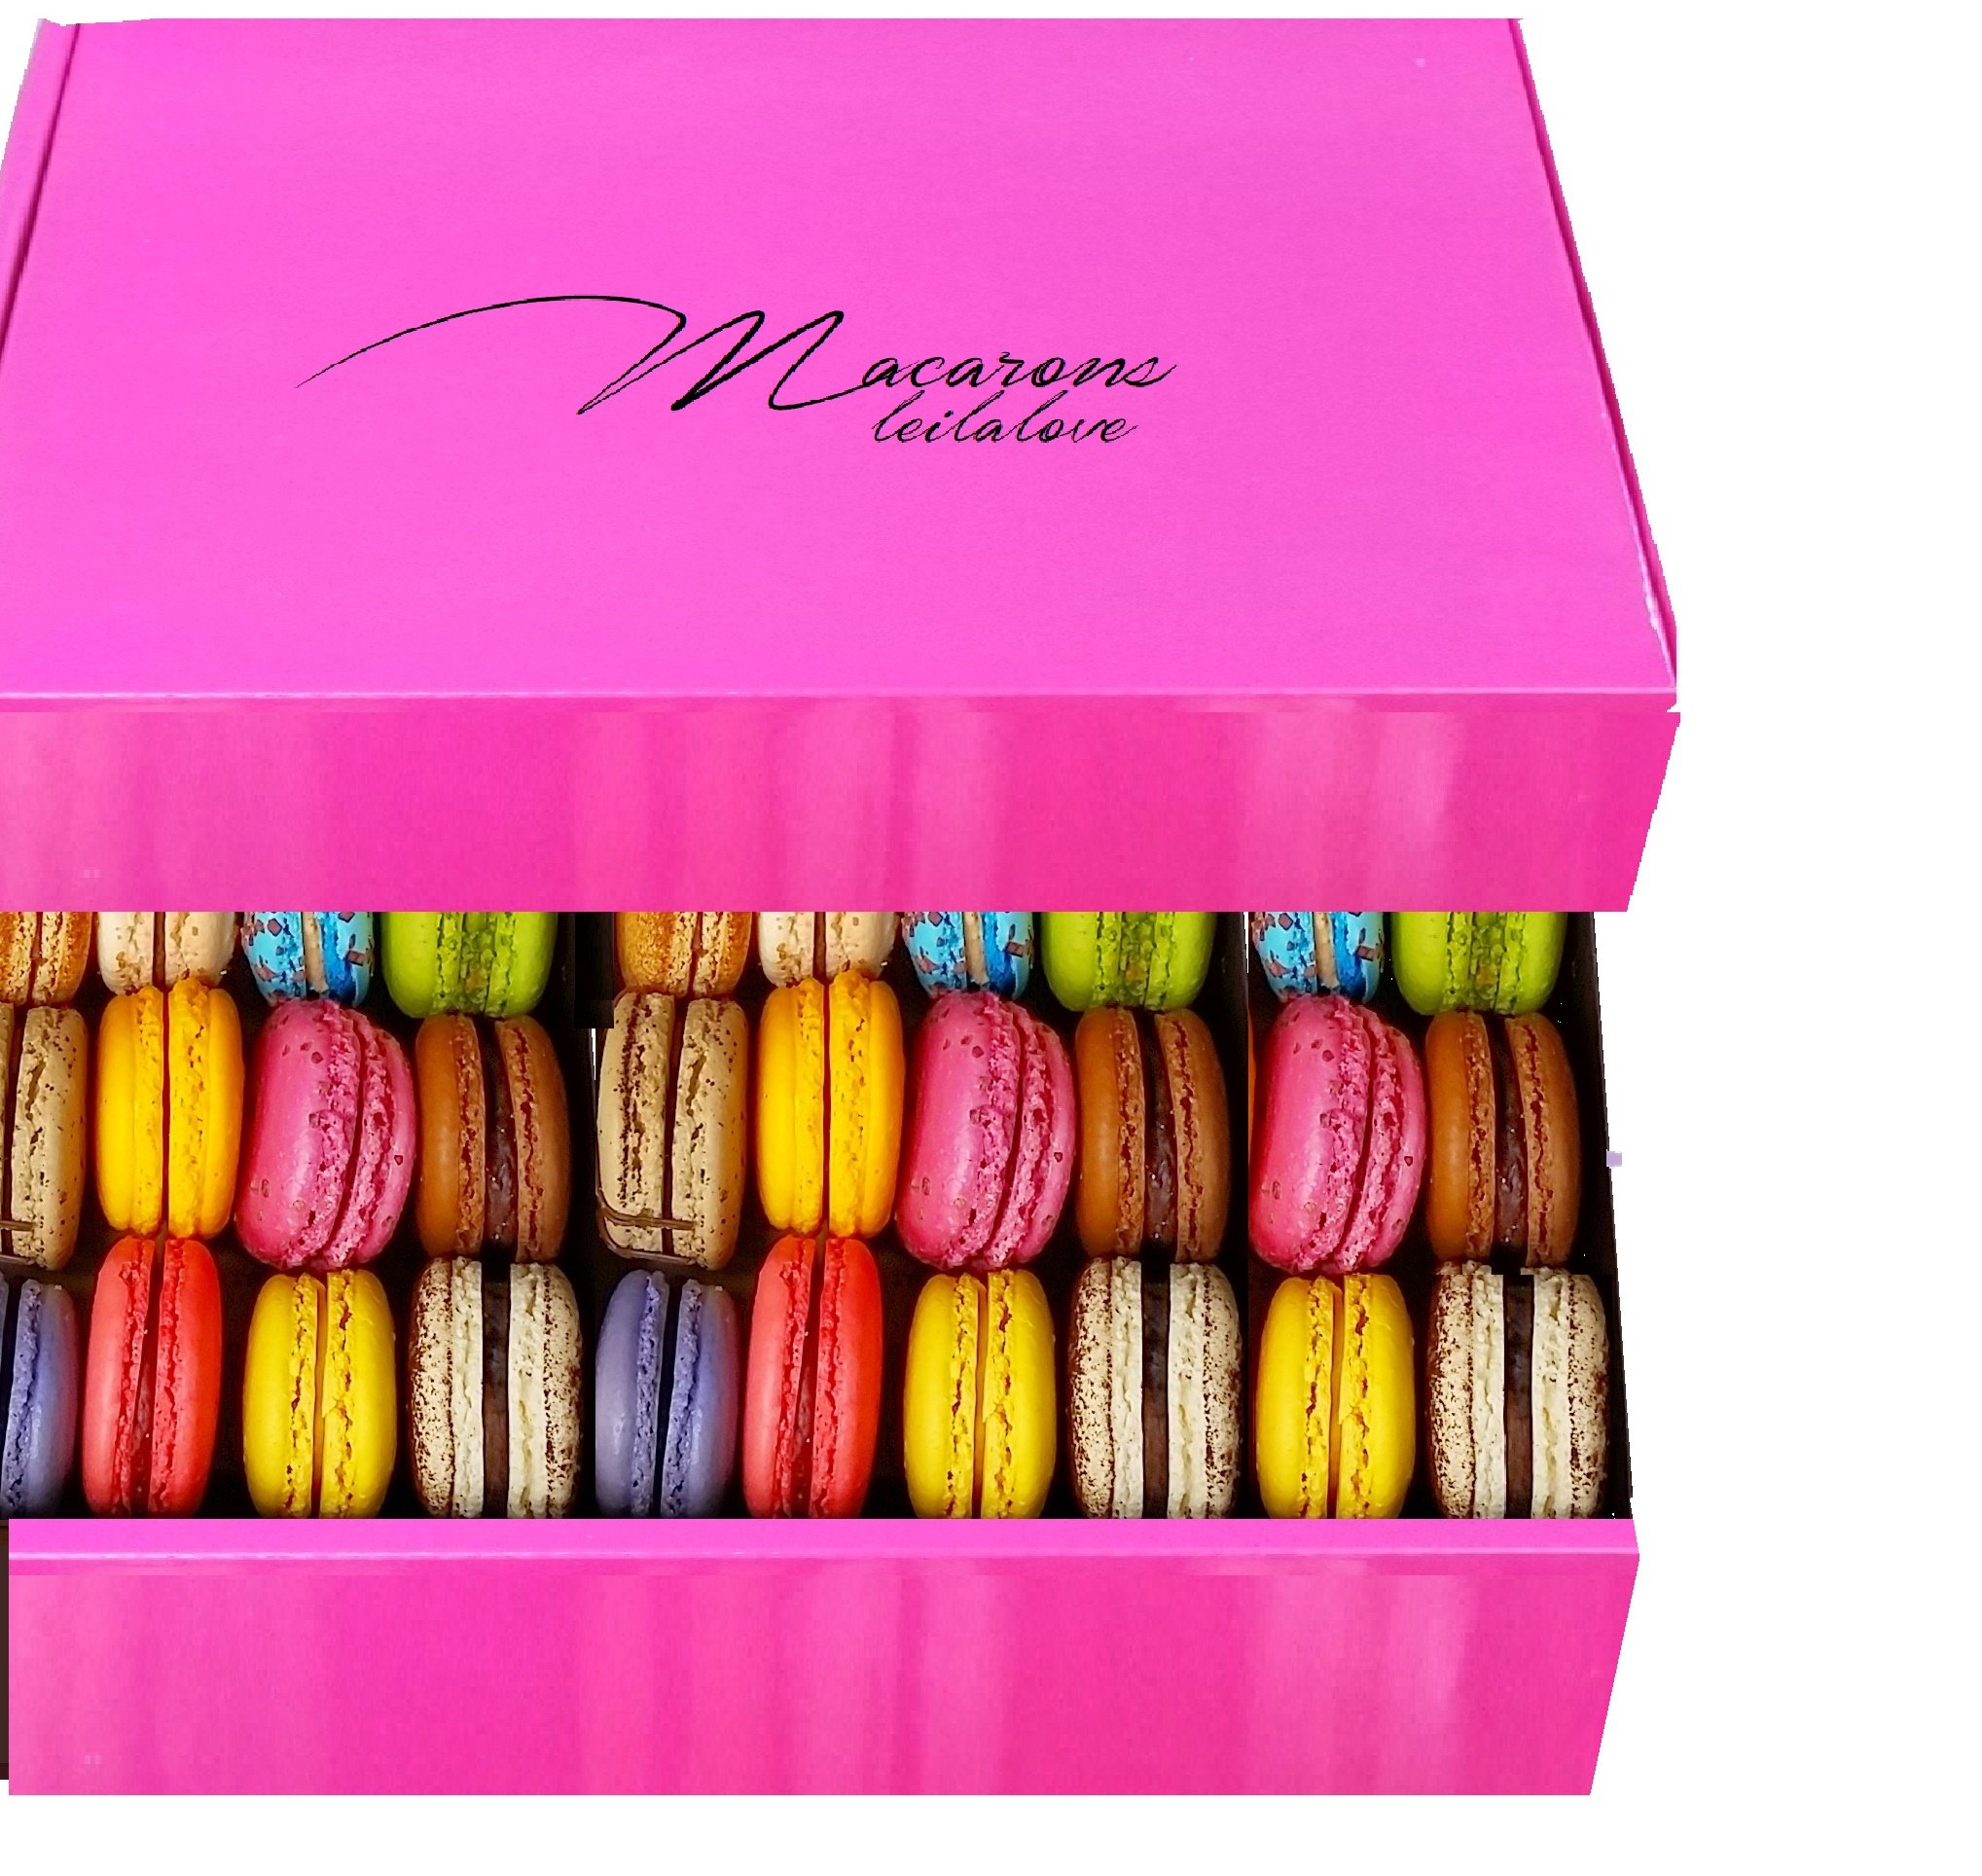 LeilaLove Macarons -30 Macarons -Fresh Baked to order by LeilaLove,Inc (Image #1)